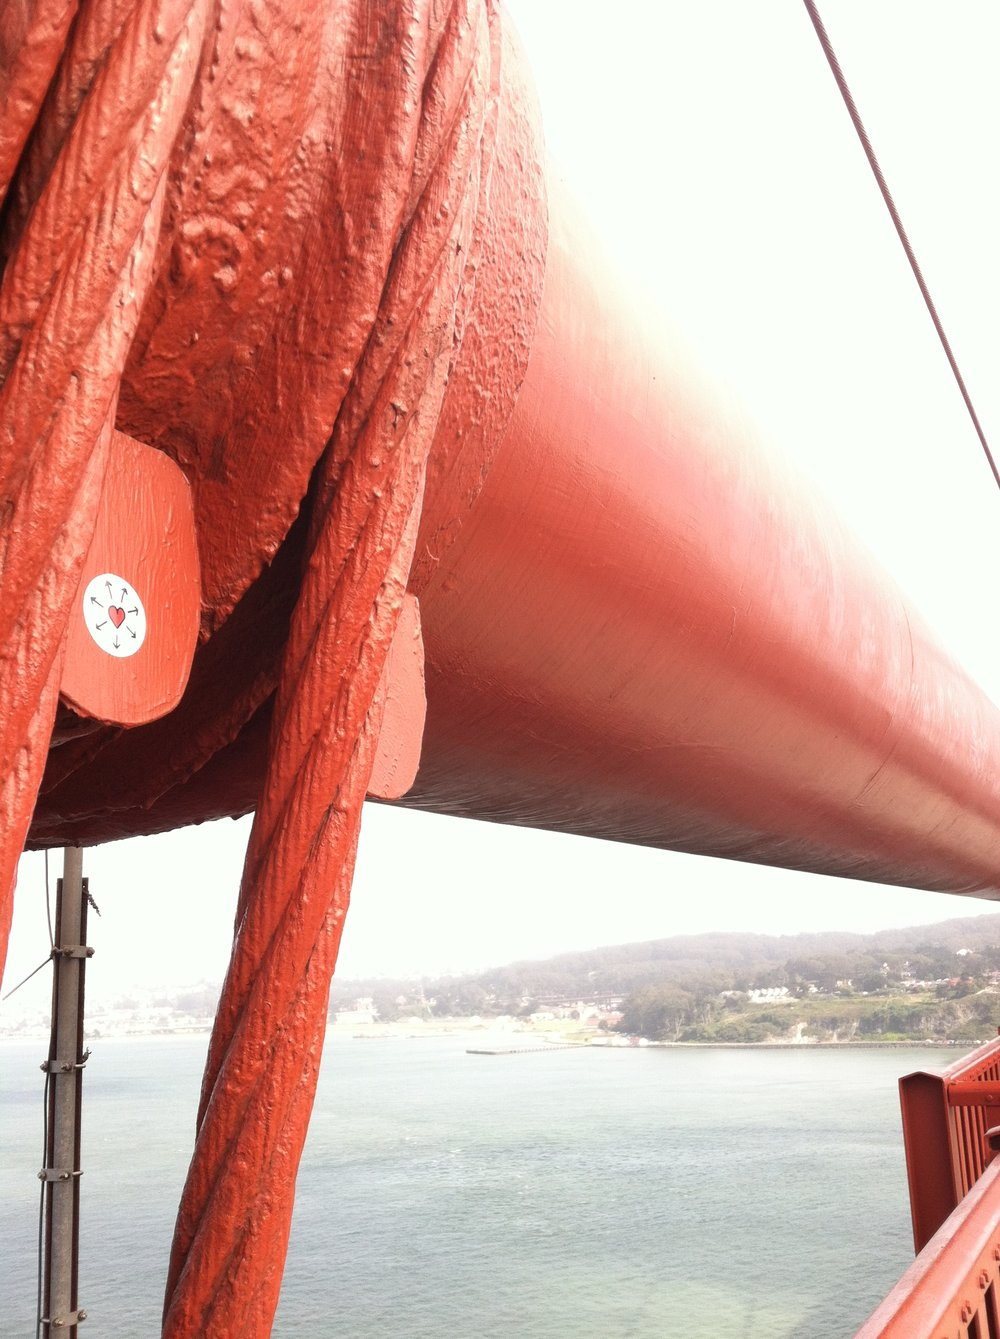 On the Golden Gate Bridge.